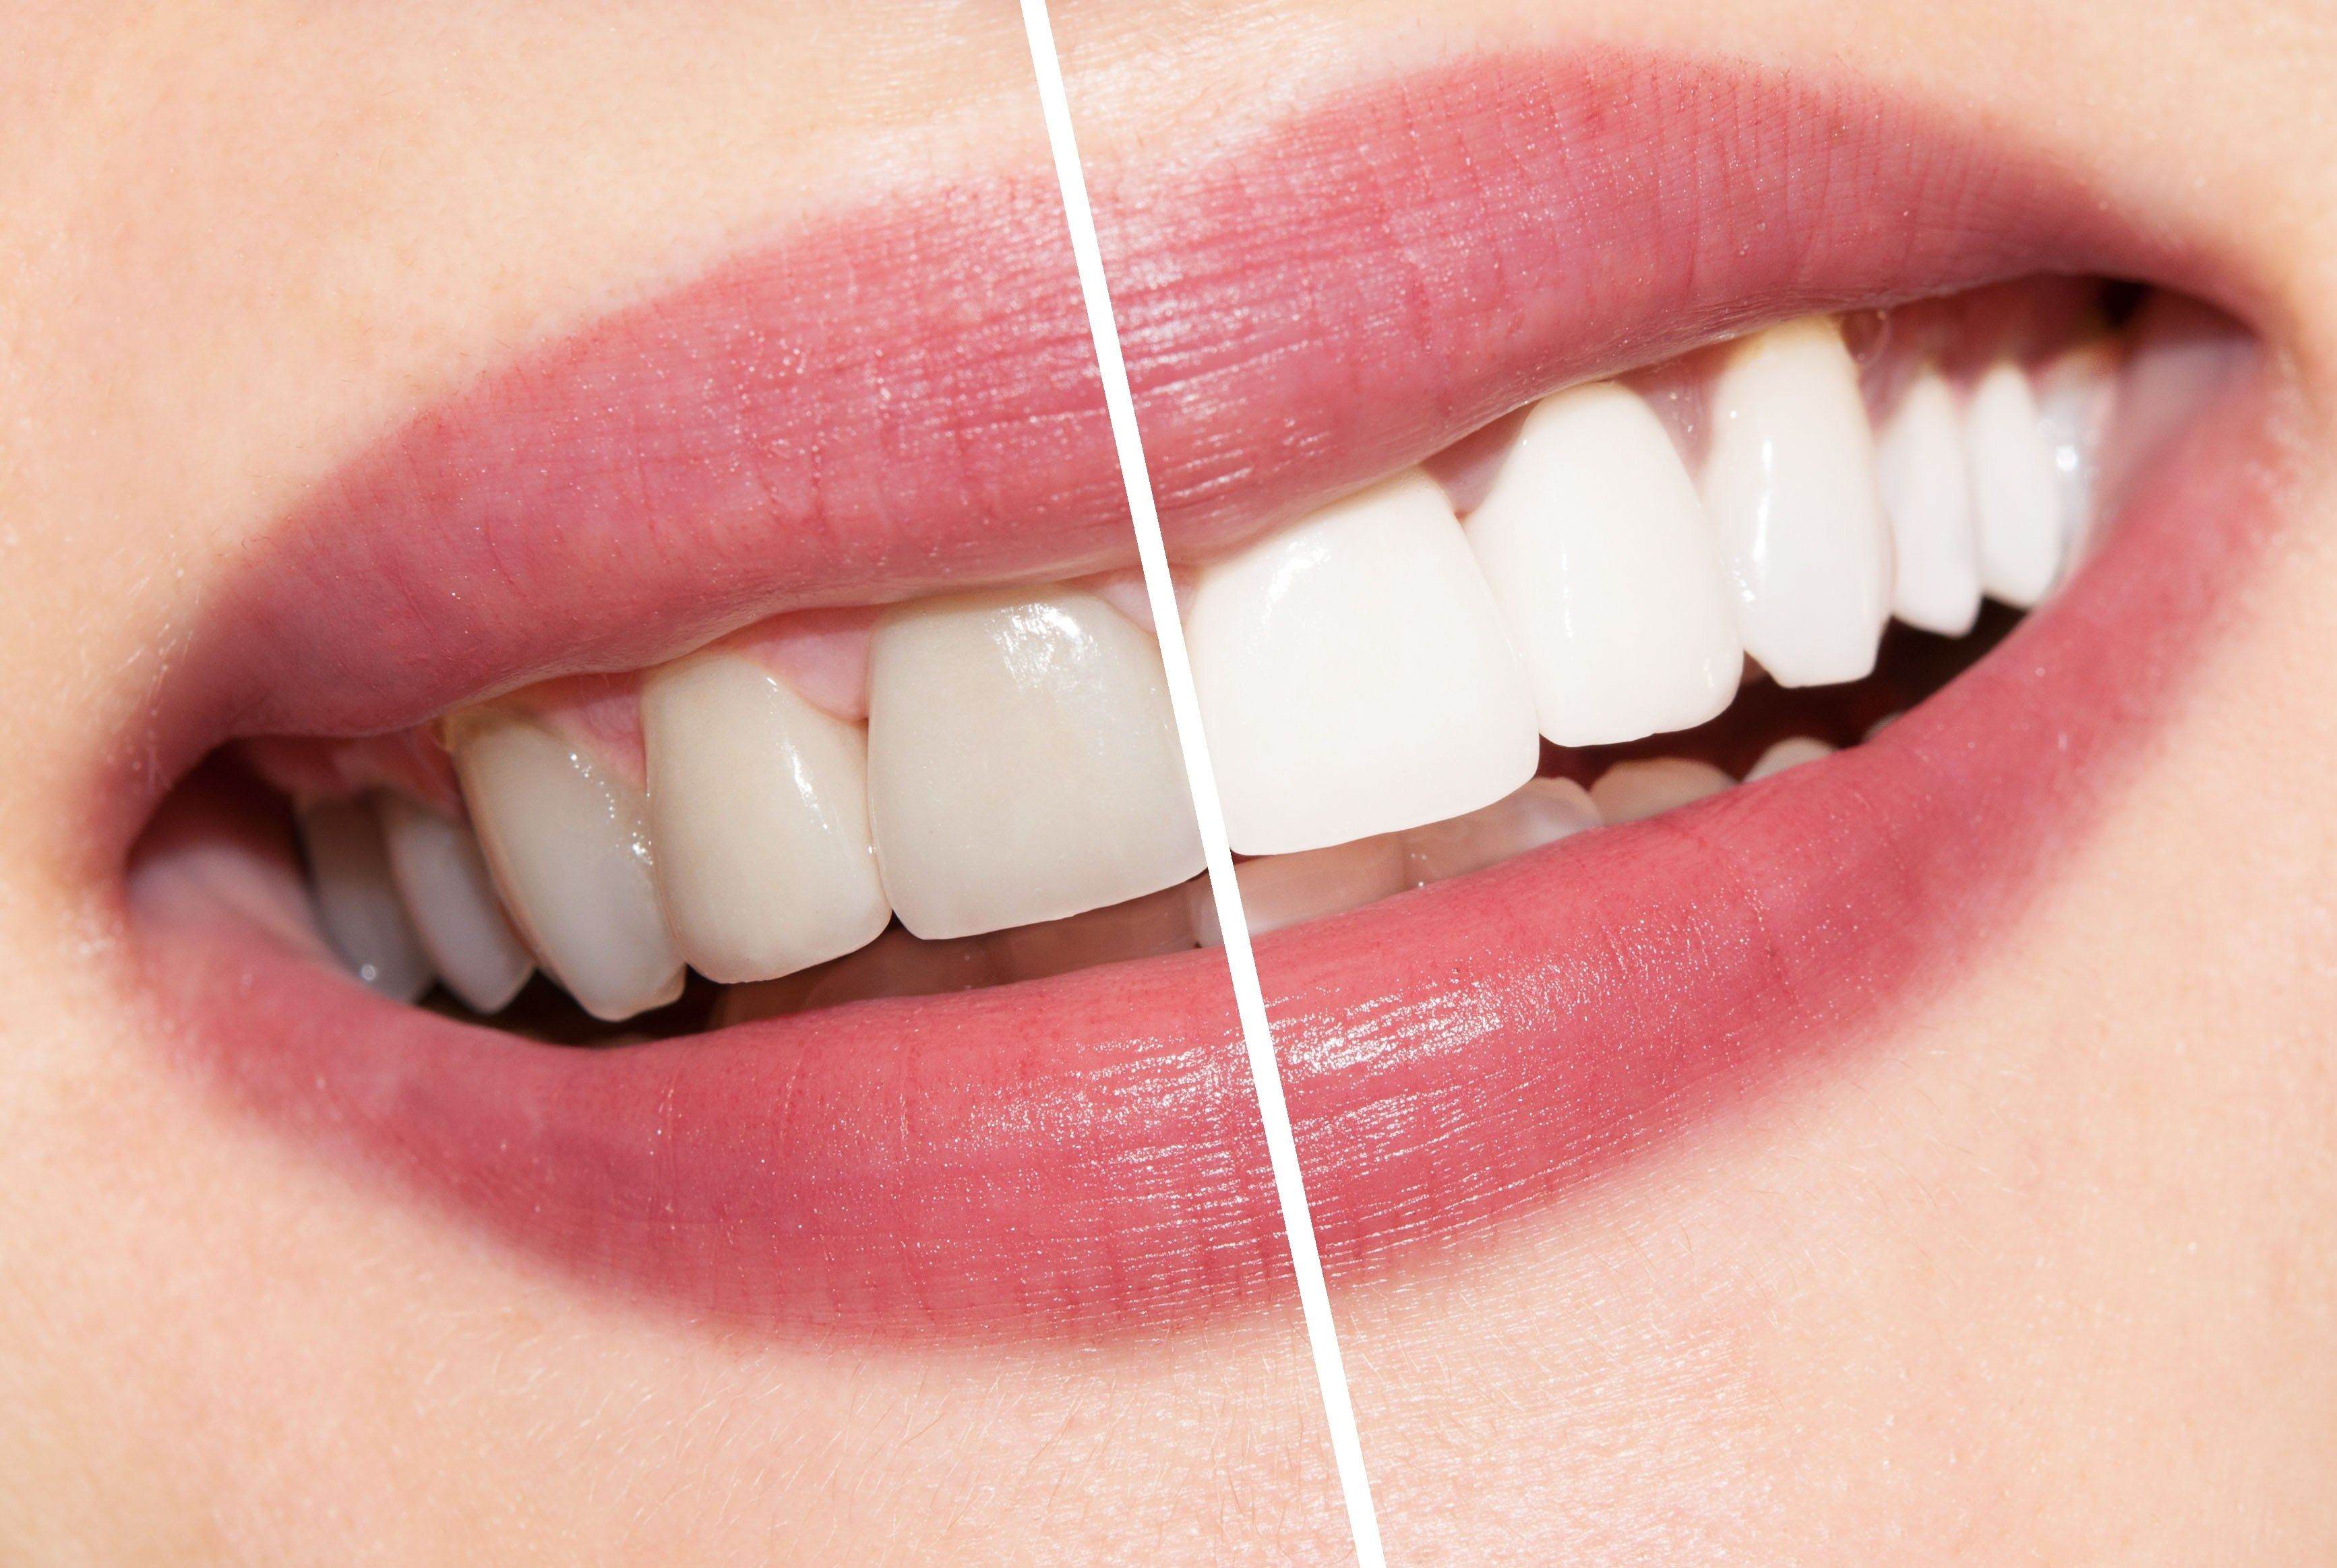 Clareamento Dental Moldeira Antes E Depois Clareamento Dental